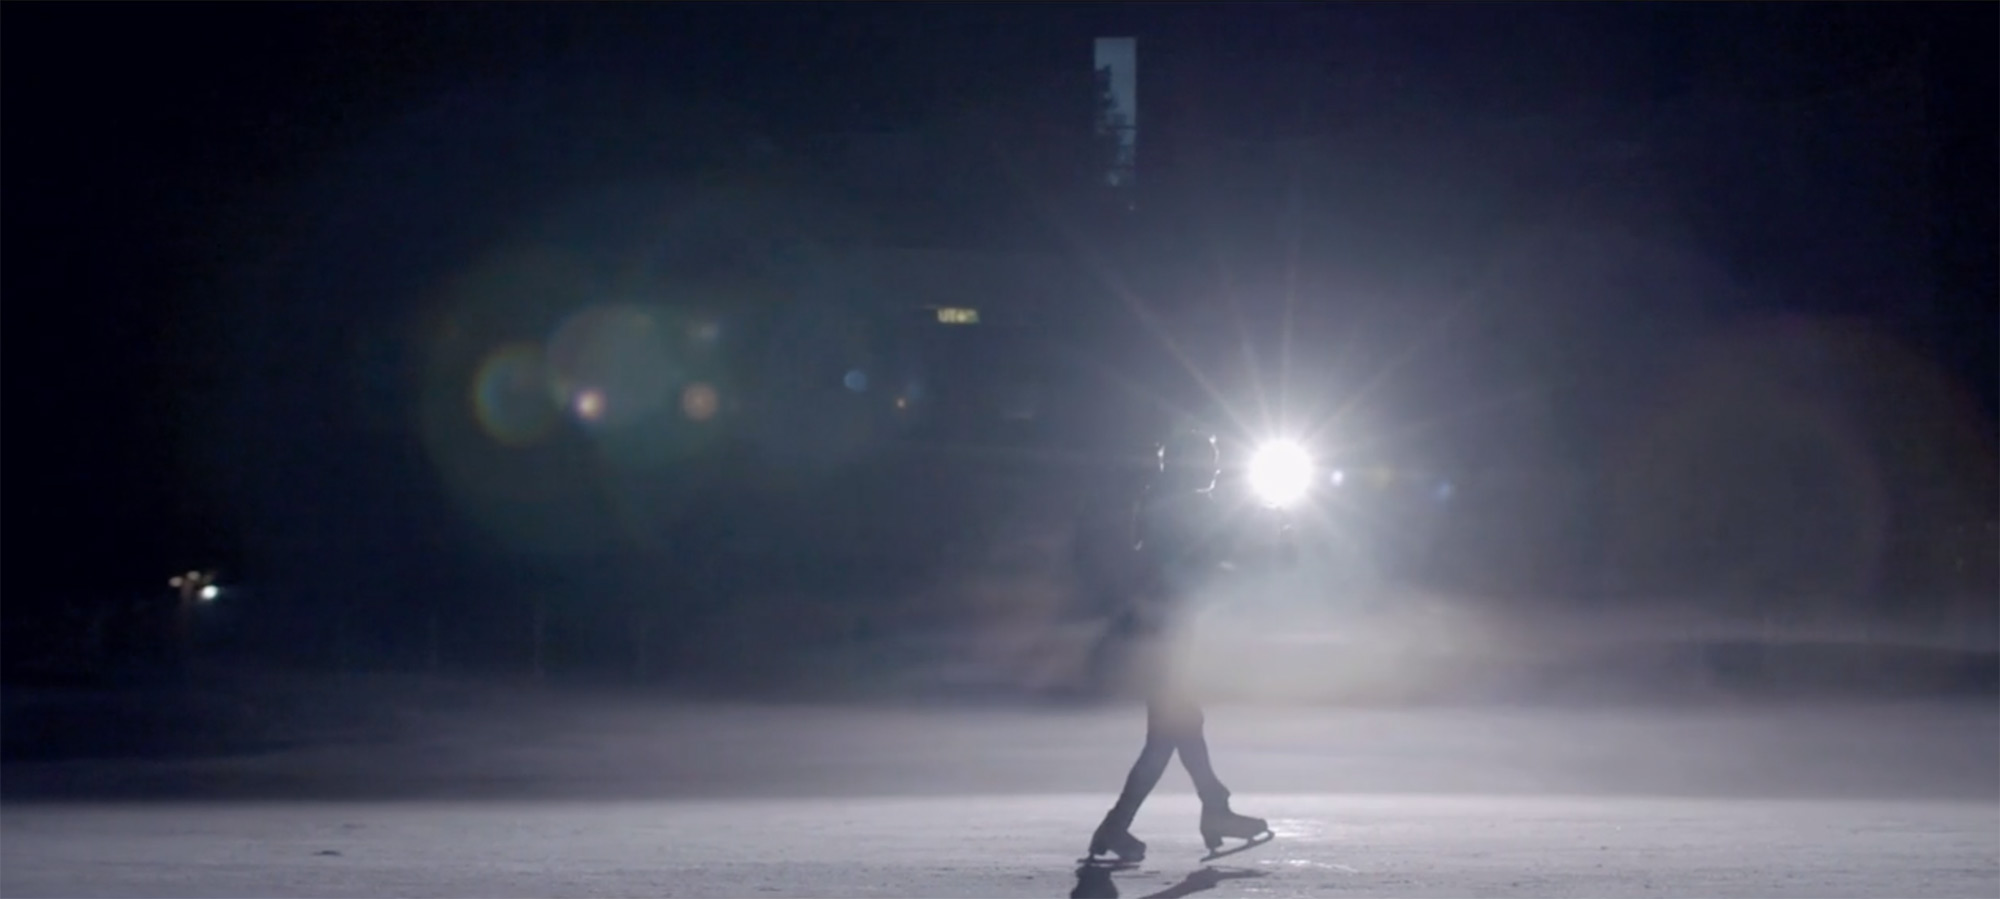 One big light an ice rink and Yuna Kim